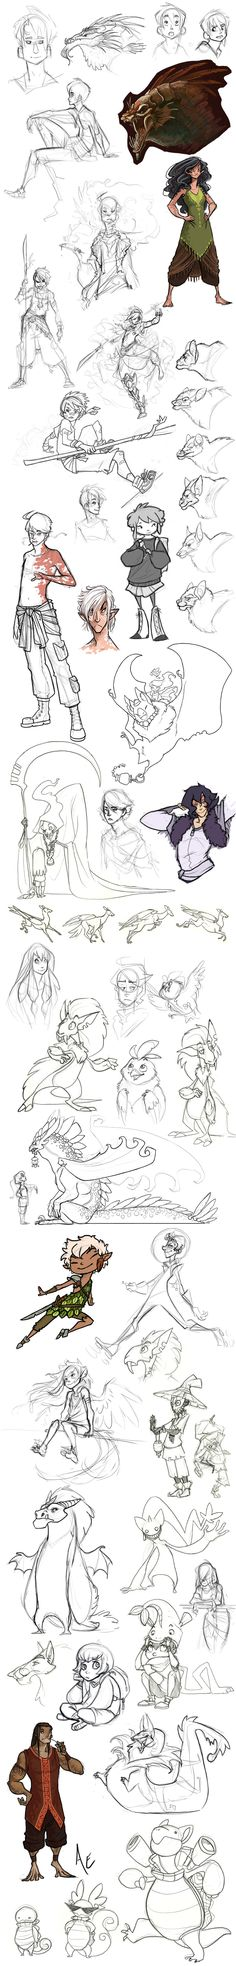 Sketchdump: Roughs and tumbles by Turtle-Arts.deviantart.com on @deviantART